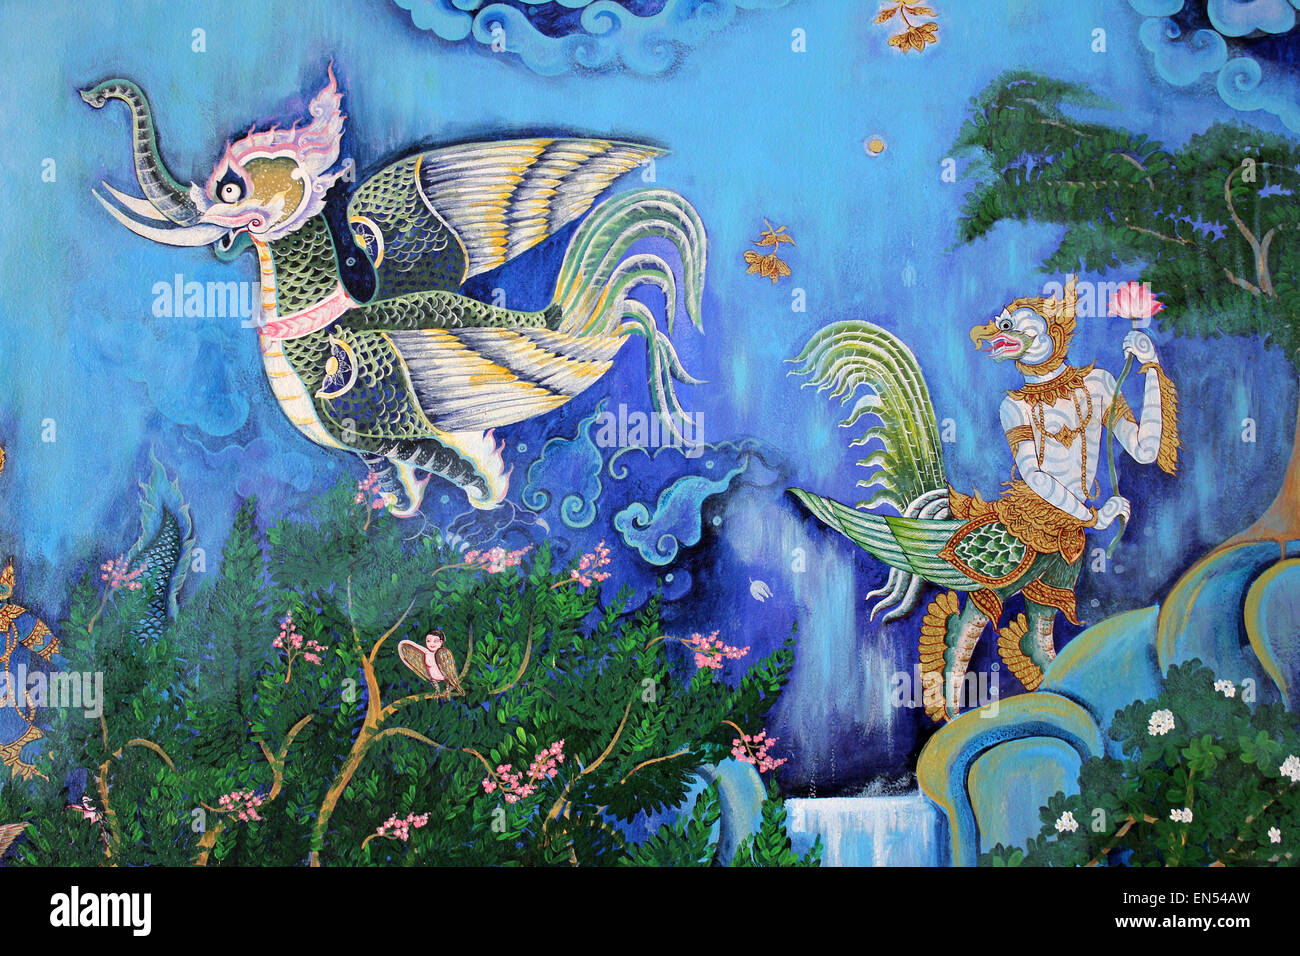 Thai Painting Depicting Mythical Creatures Of Himmavanta - Stock Image